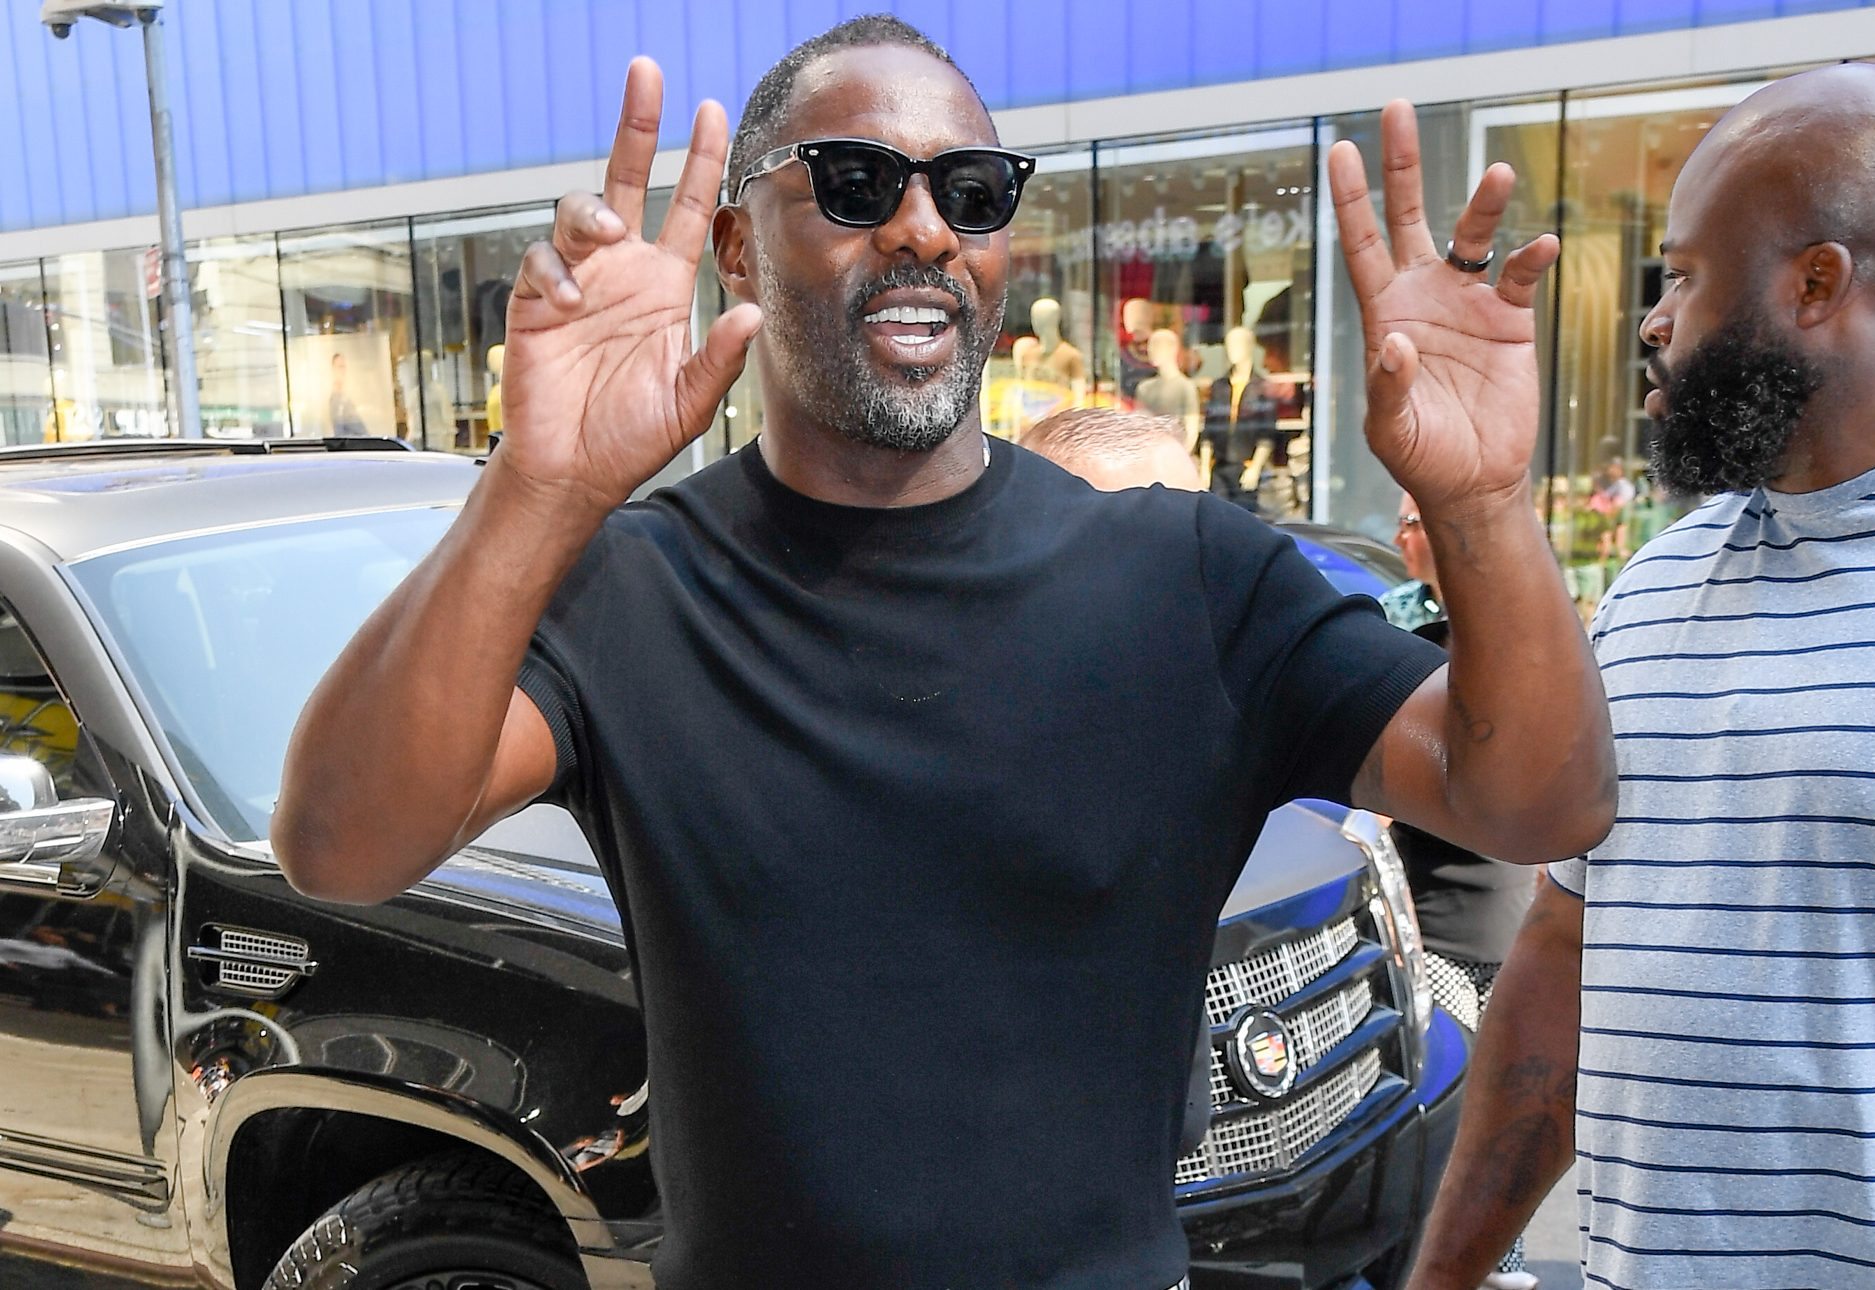 Idris Elba Suffering While Eating Spicy Chicken Sparks Memes